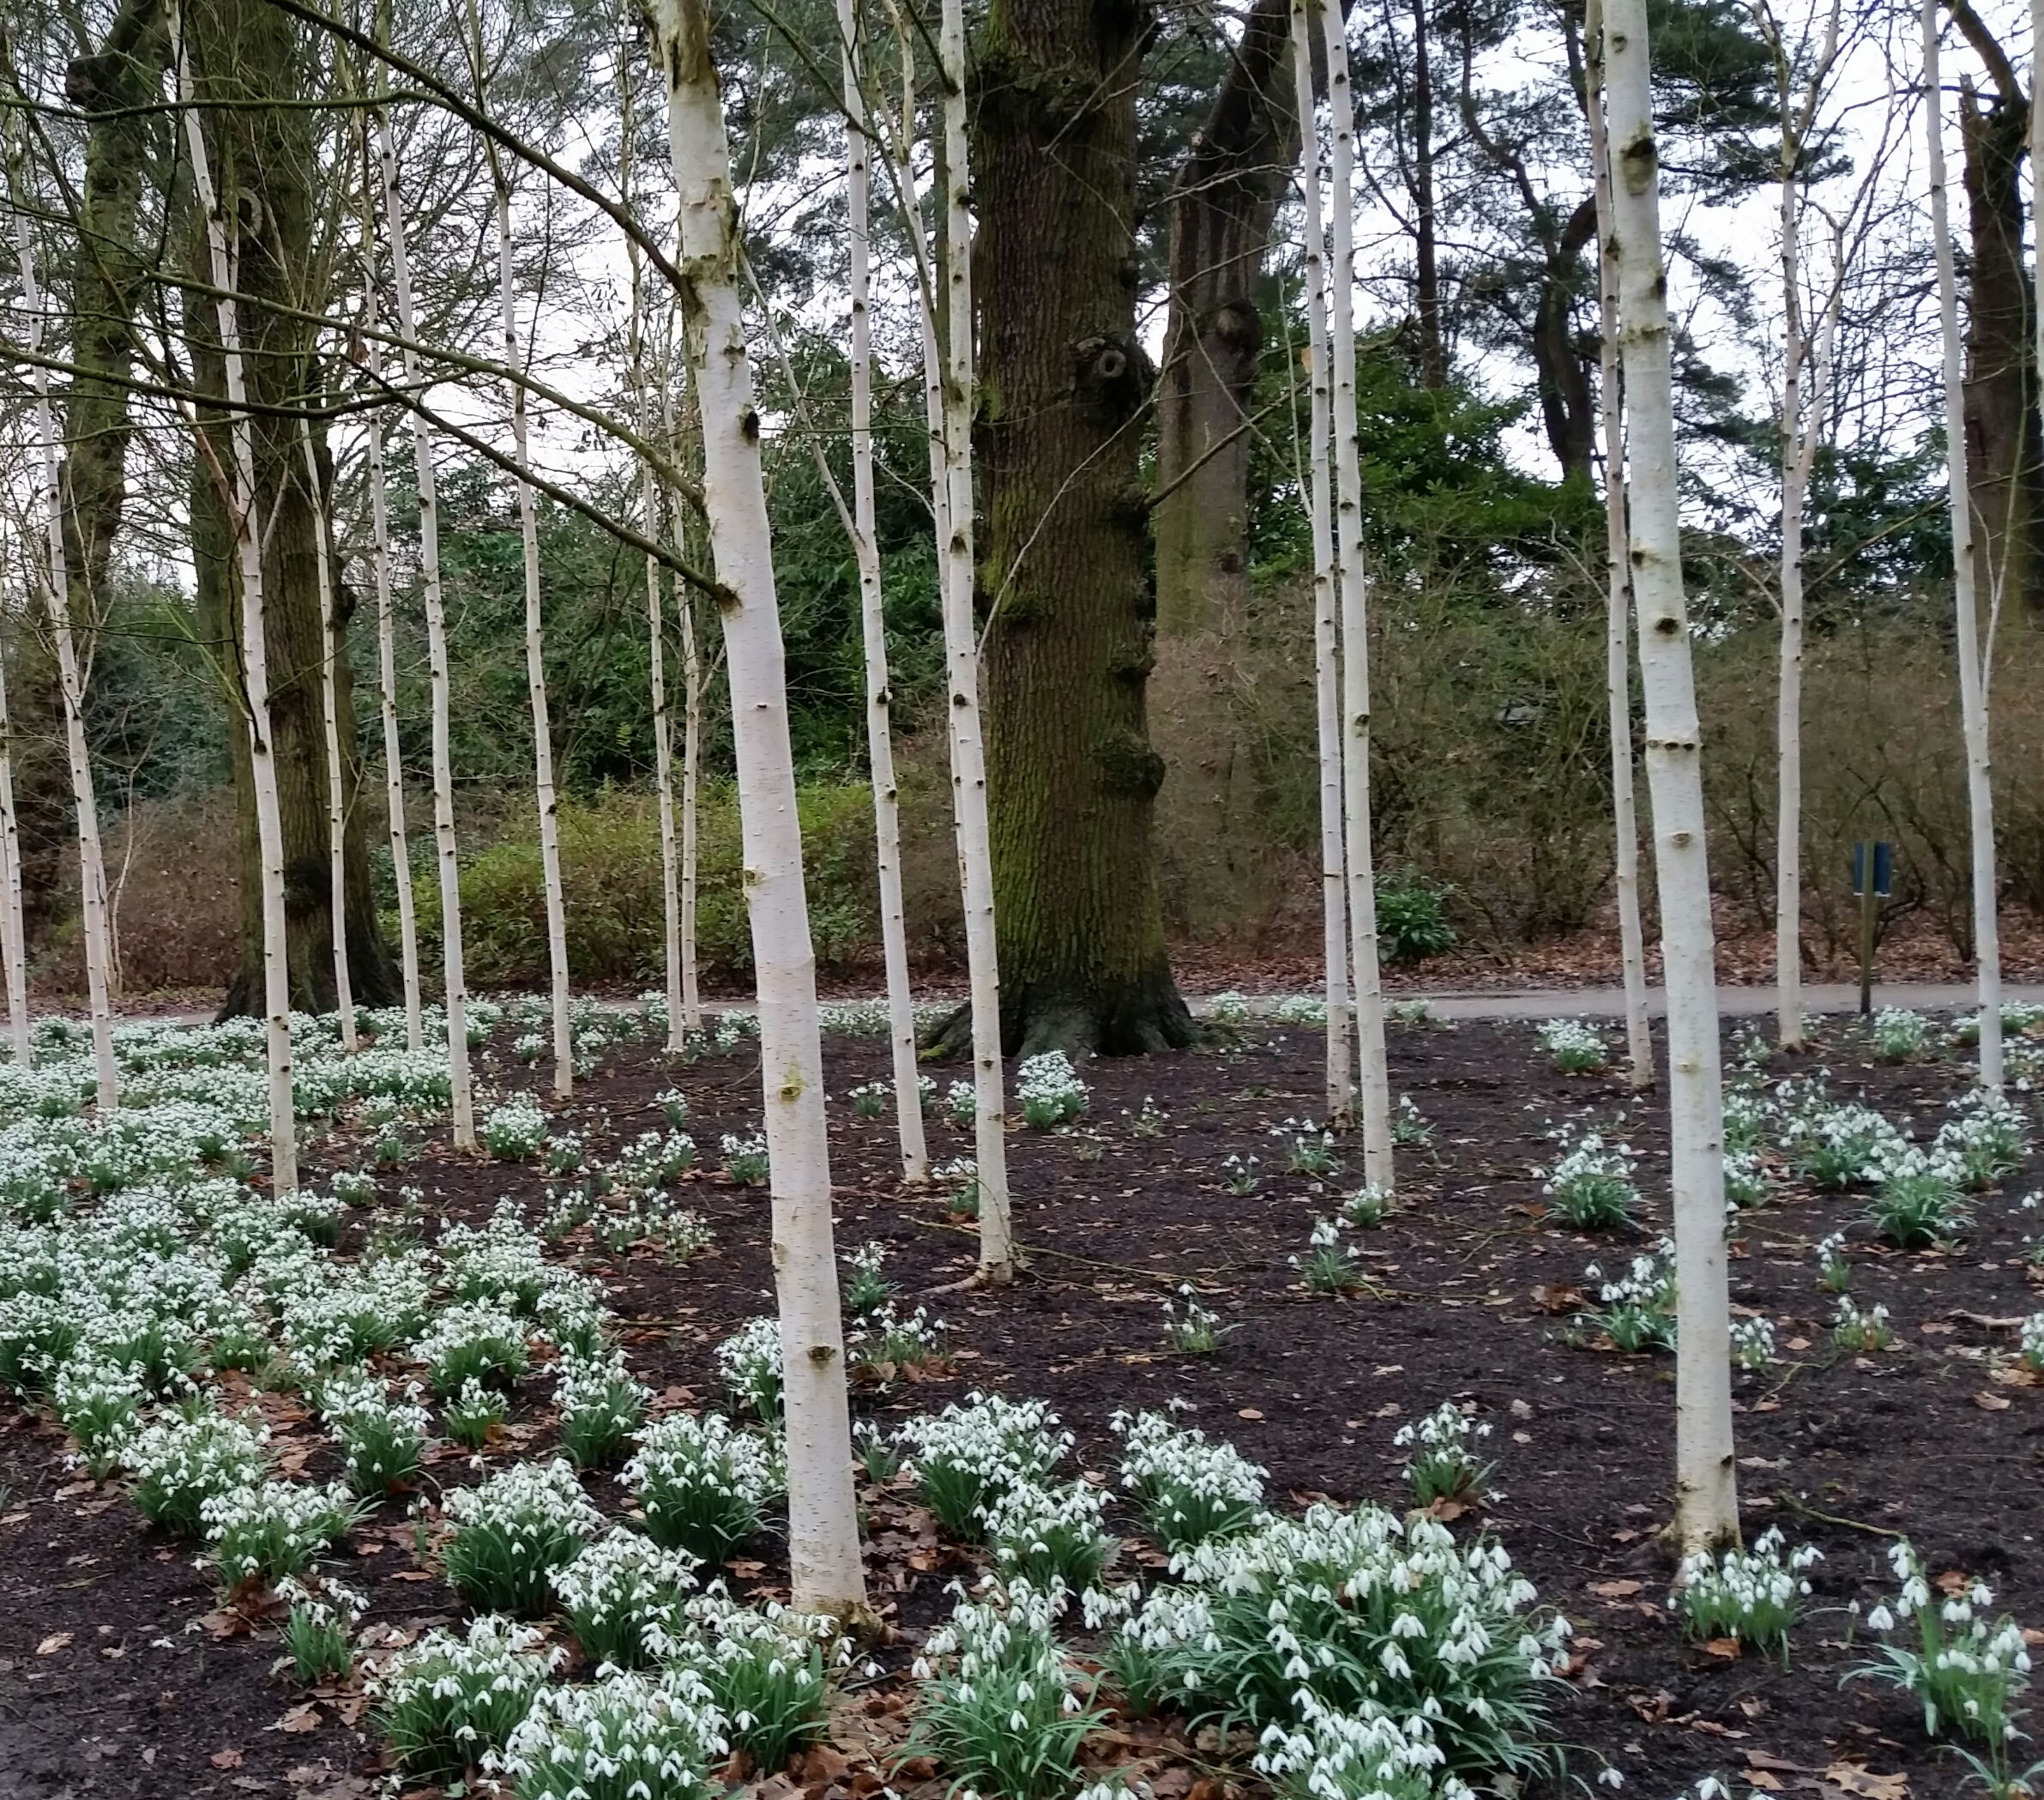 Snowdrops among birch trees at Dunham Massey, National Trust 19 Feb 2018